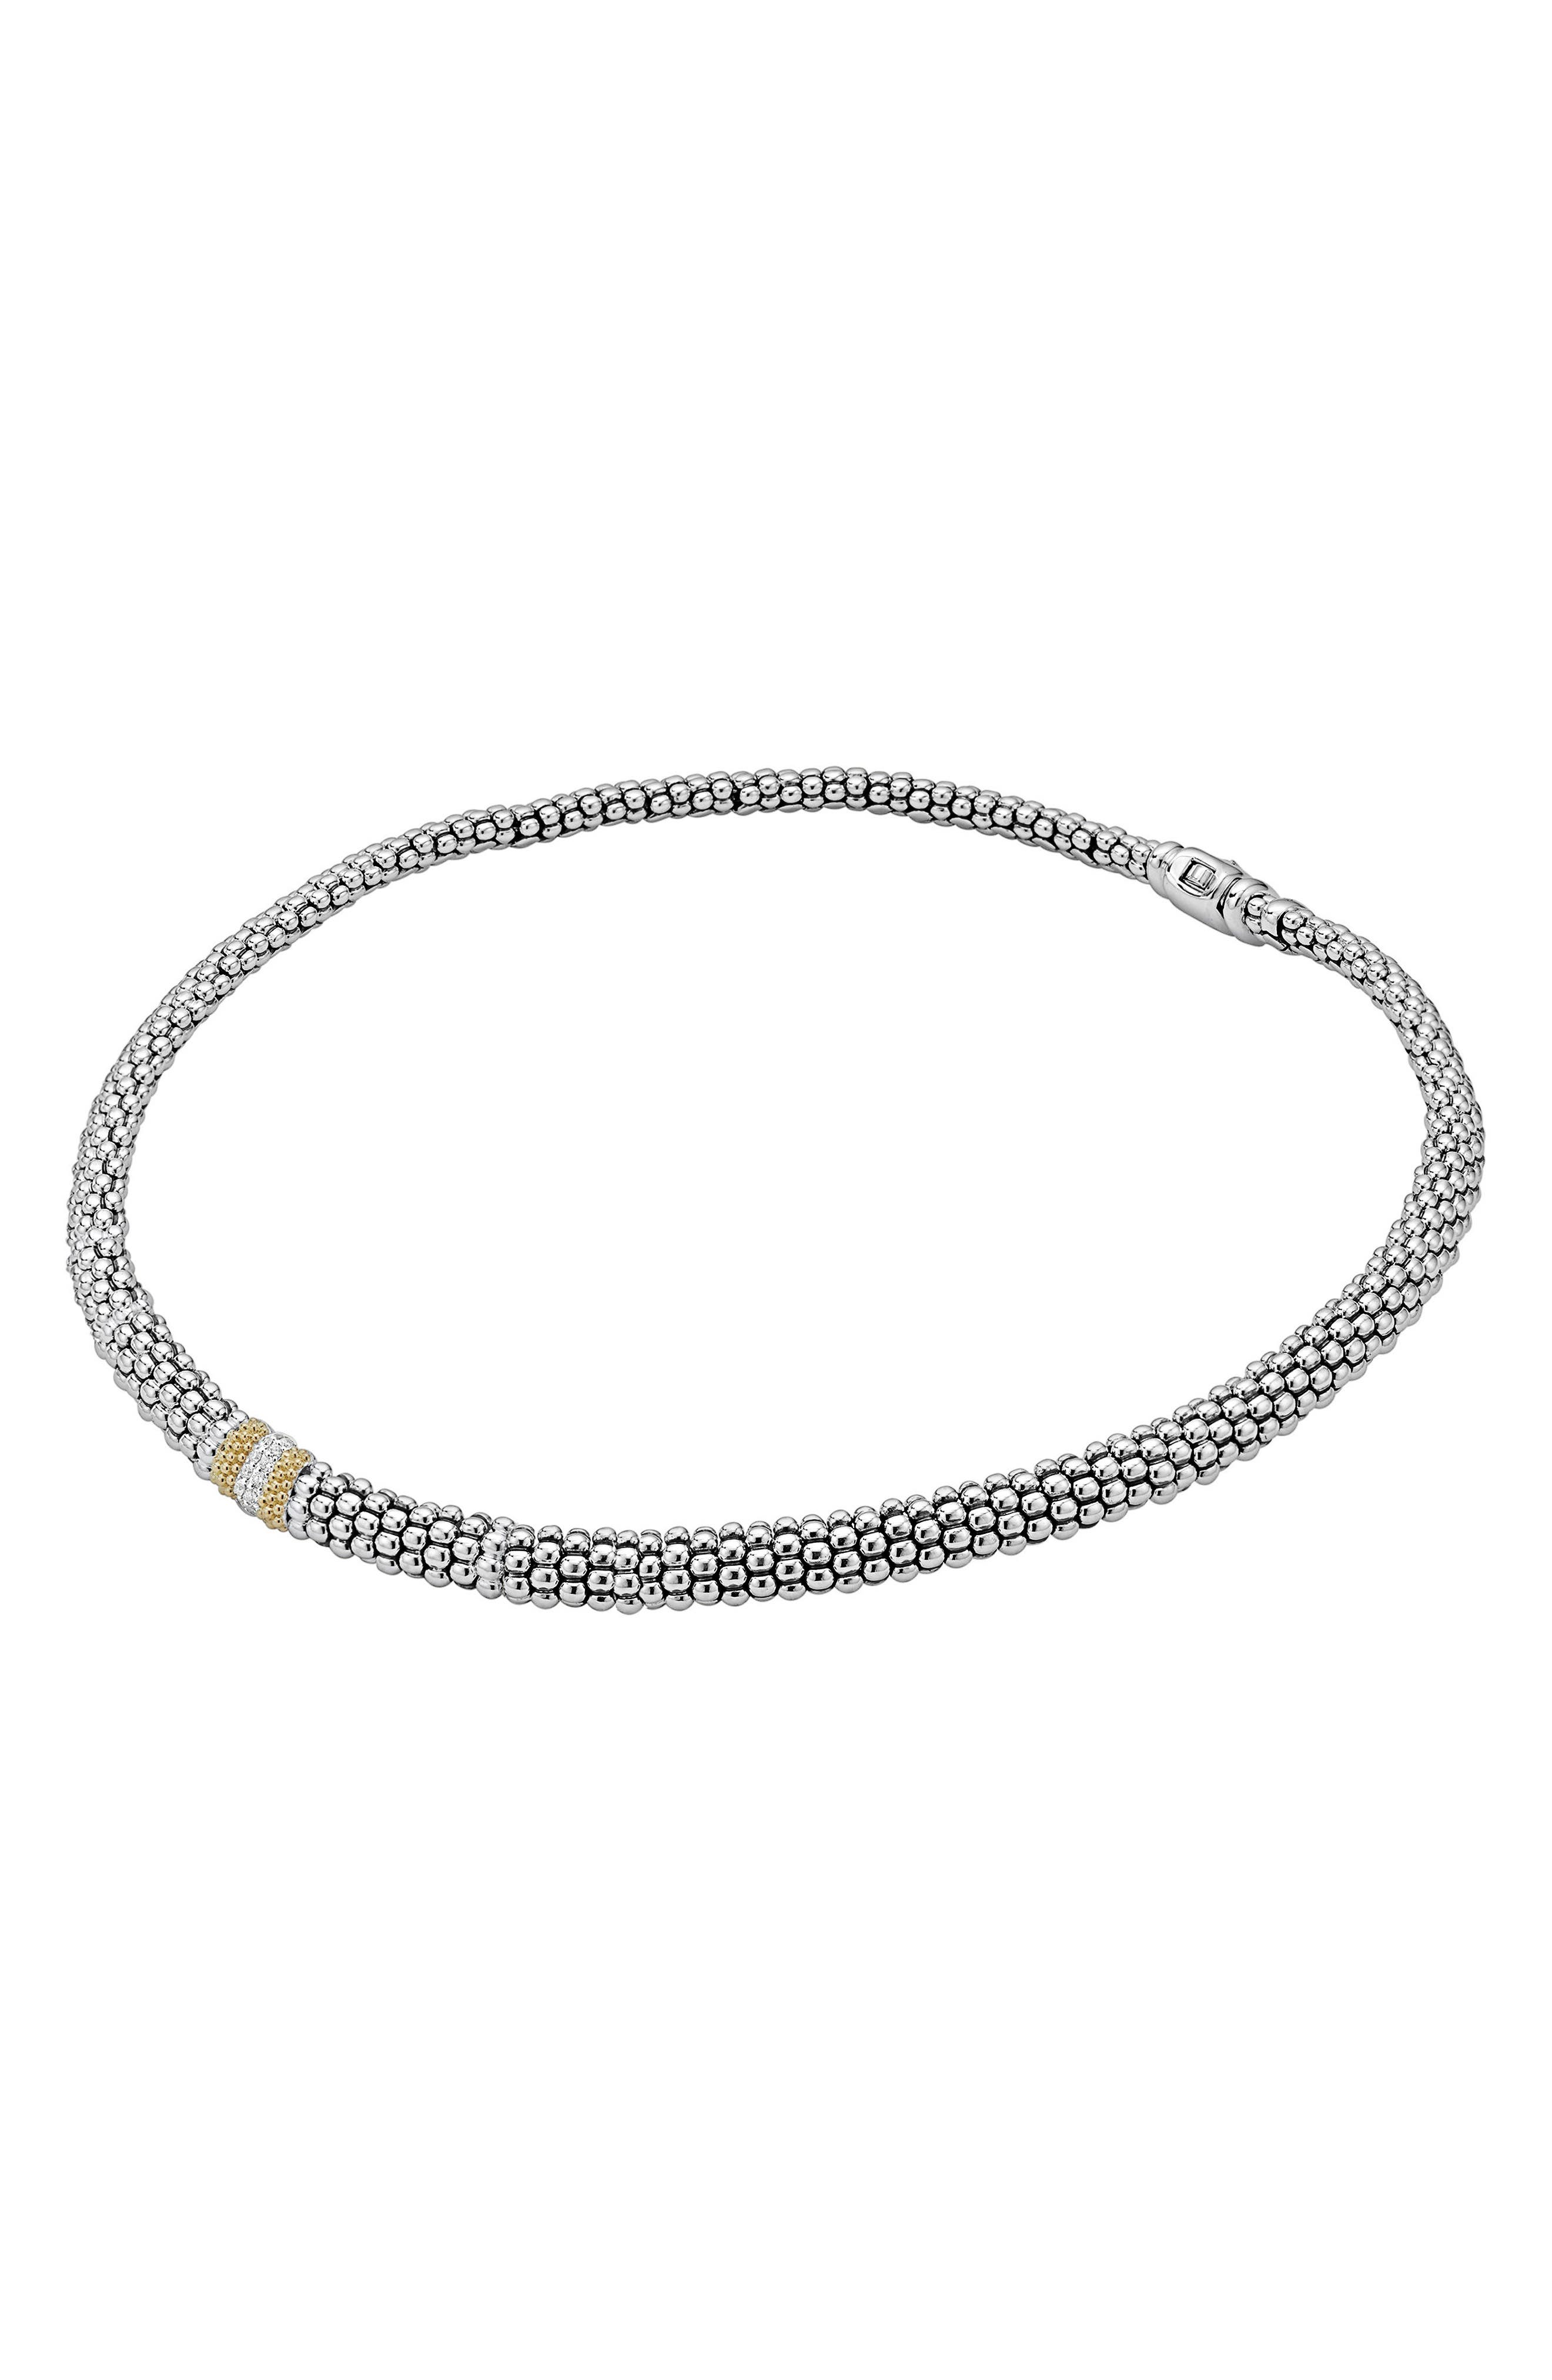 Diamond Lux Station Collar Necklace,                             Alternate thumbnail 5, color,                             Silver/ Diamond